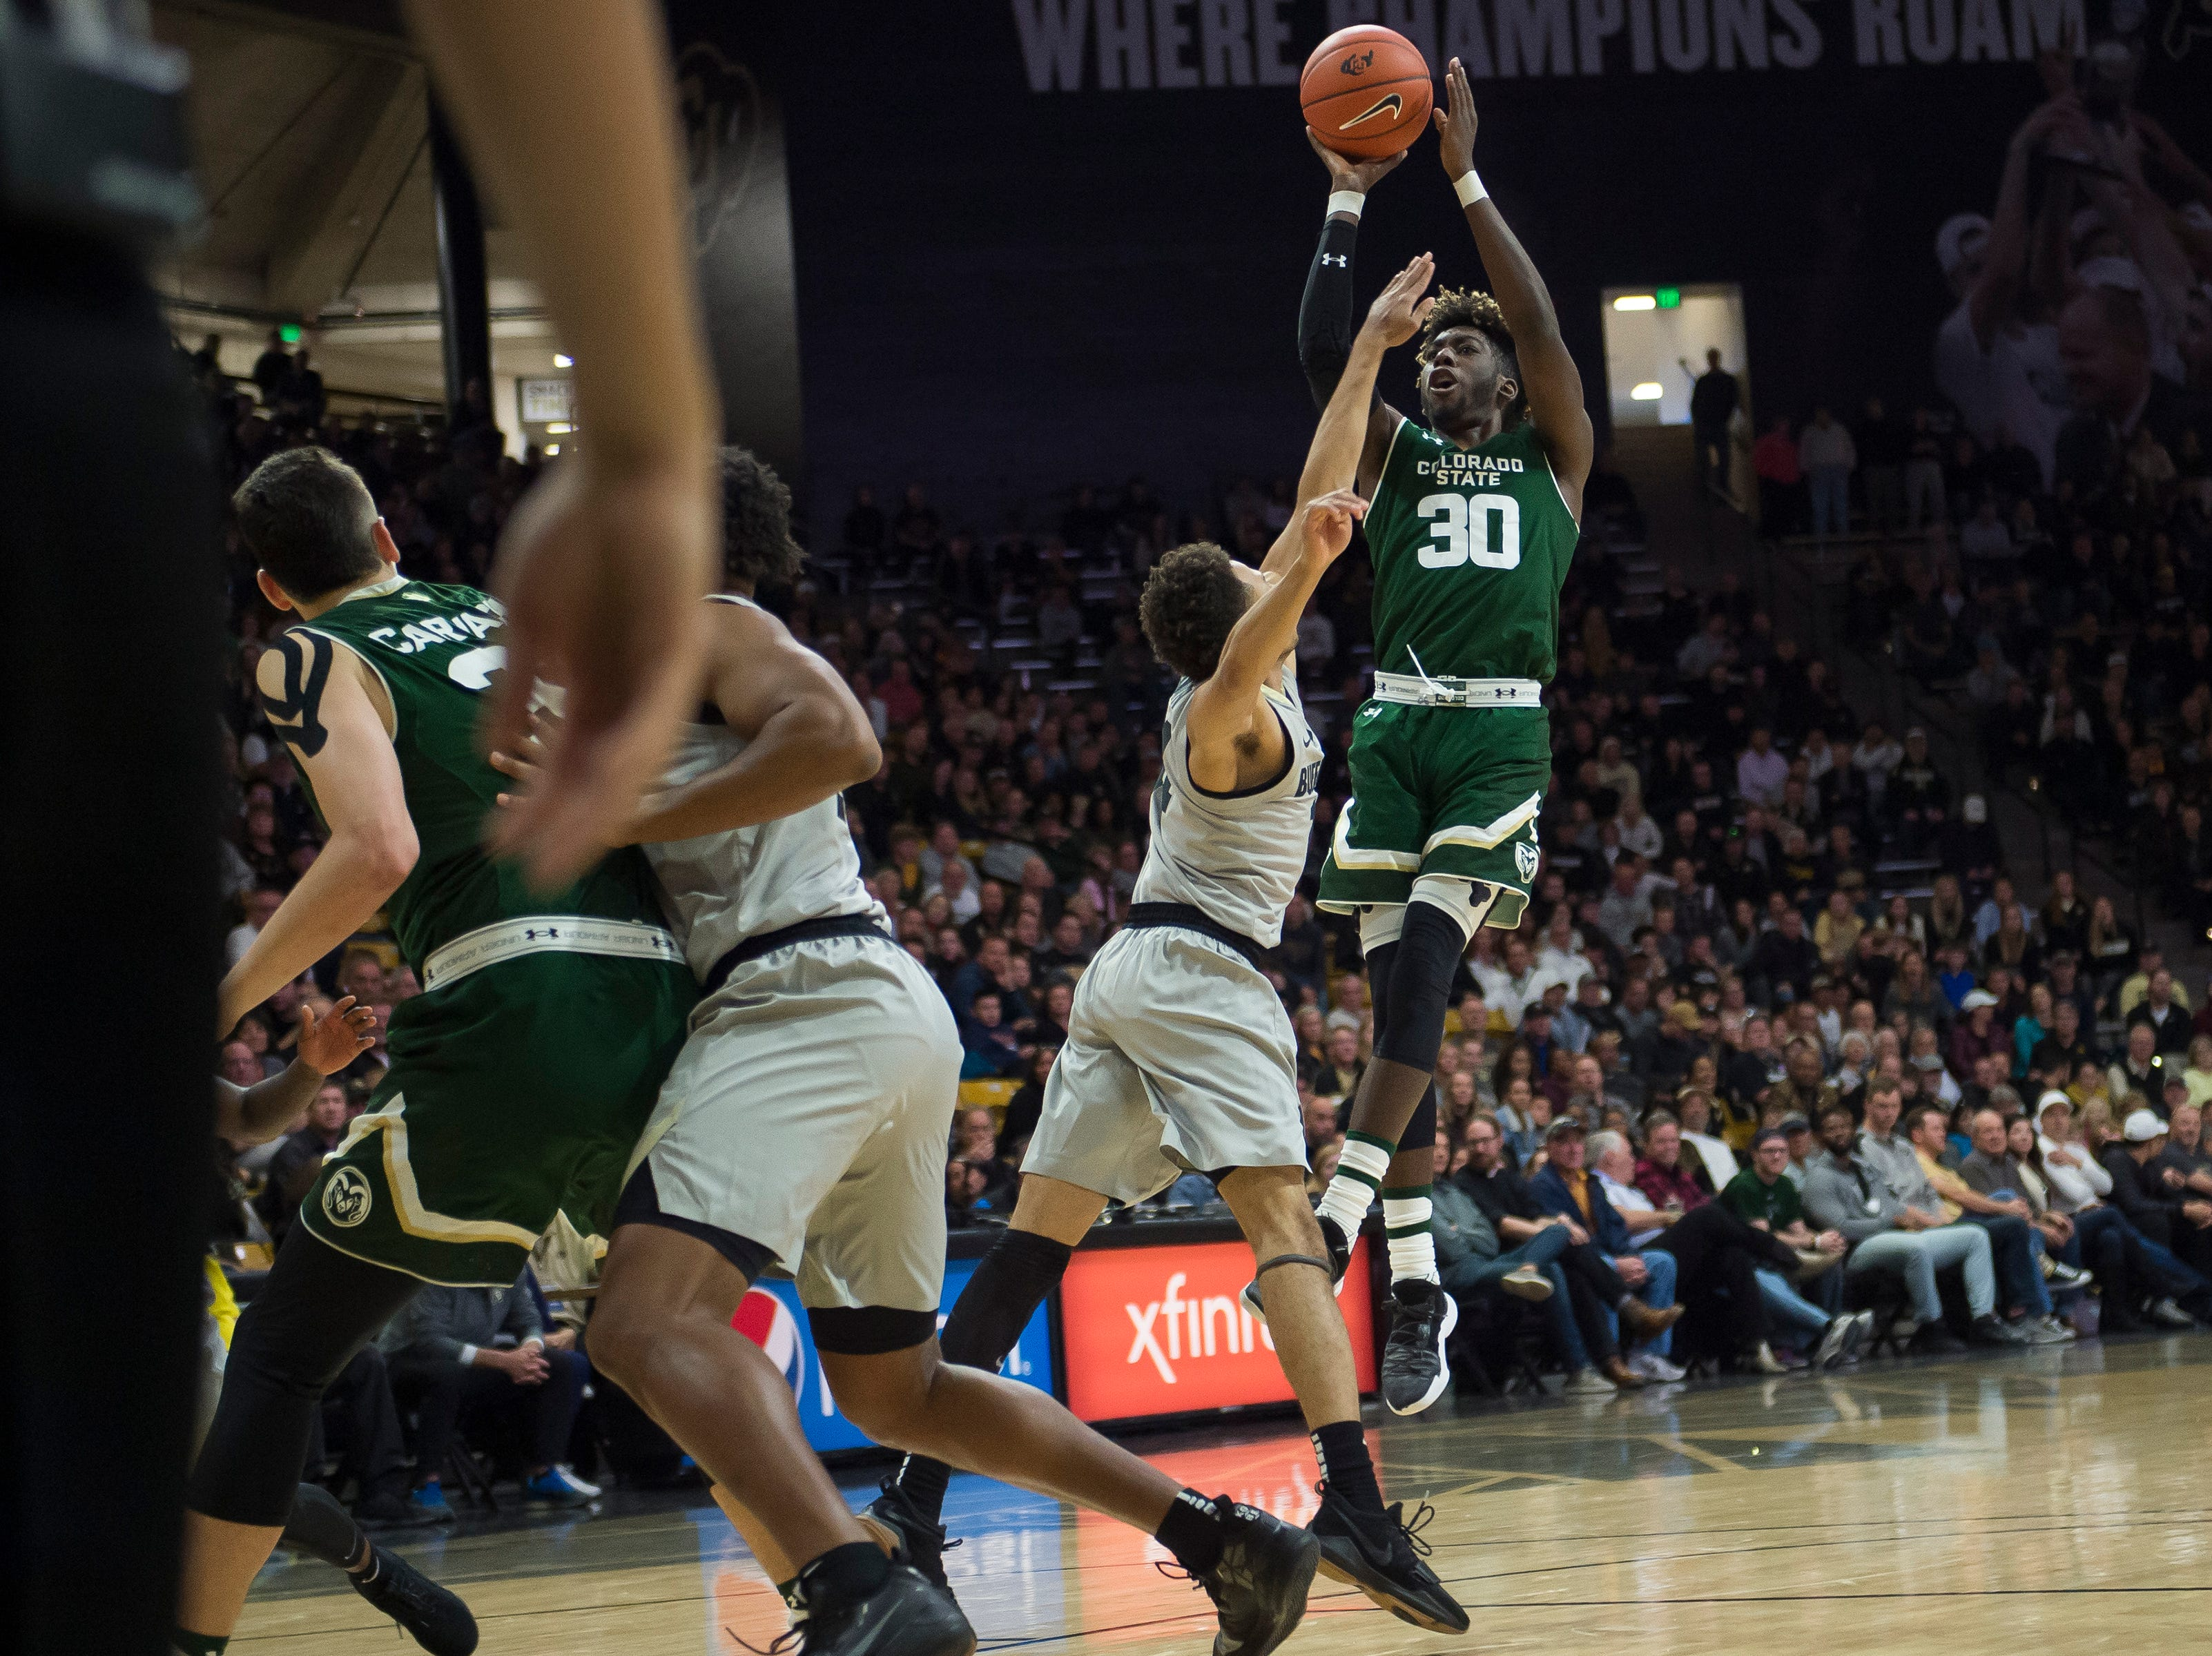 Colorado State University junior guard Kris Martin (30) takes a fading shot during a game against the University of Colorado on Saturday, Dec. 1, 2018, at the CU Event Center in Boulder, Colo.